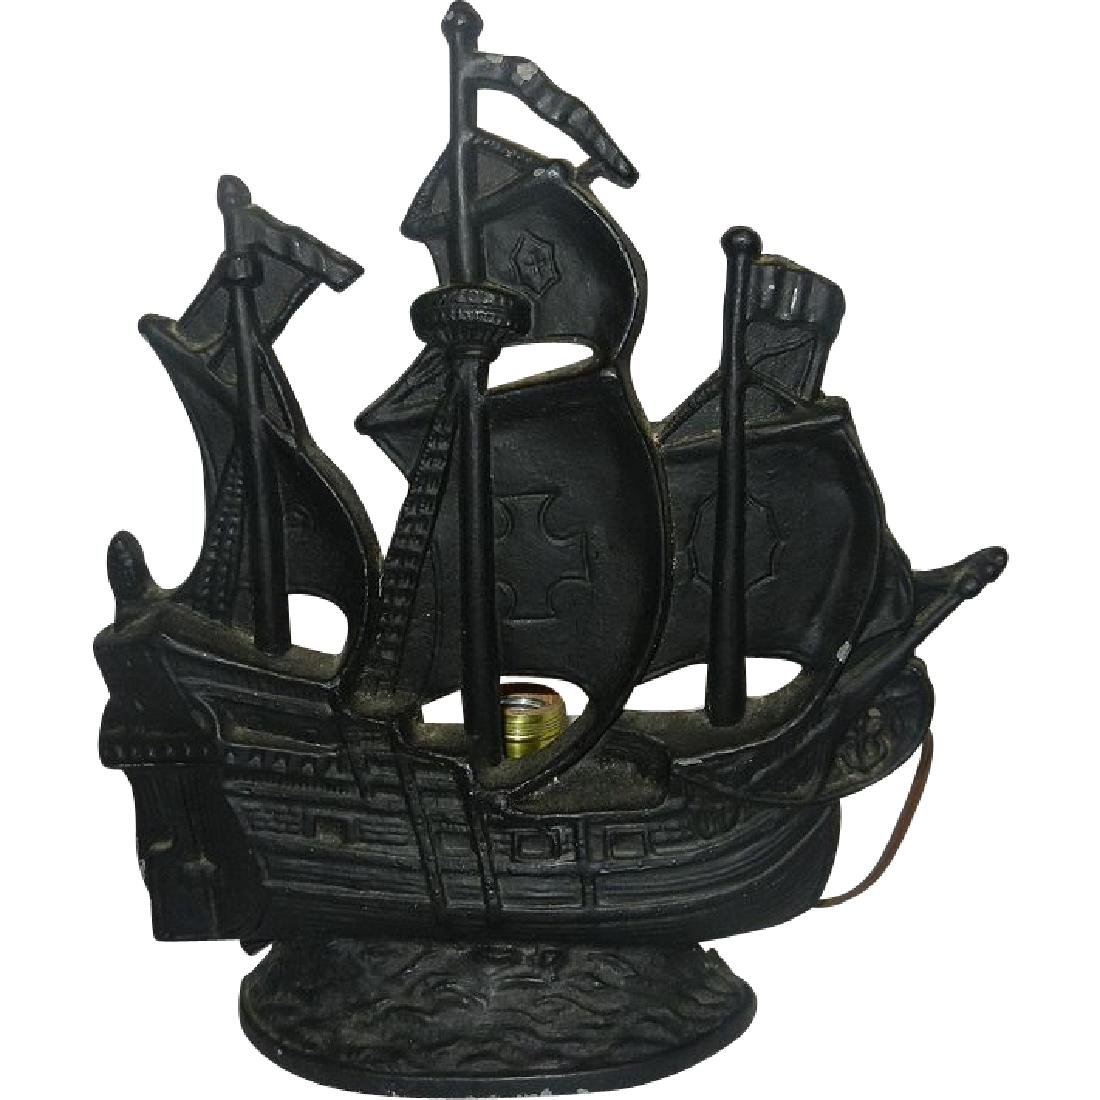 Prime Vintage Cast Brass Metal Figural Pirate Ship Table Lamp Interior Design Ideas Clesiryabchikinfo